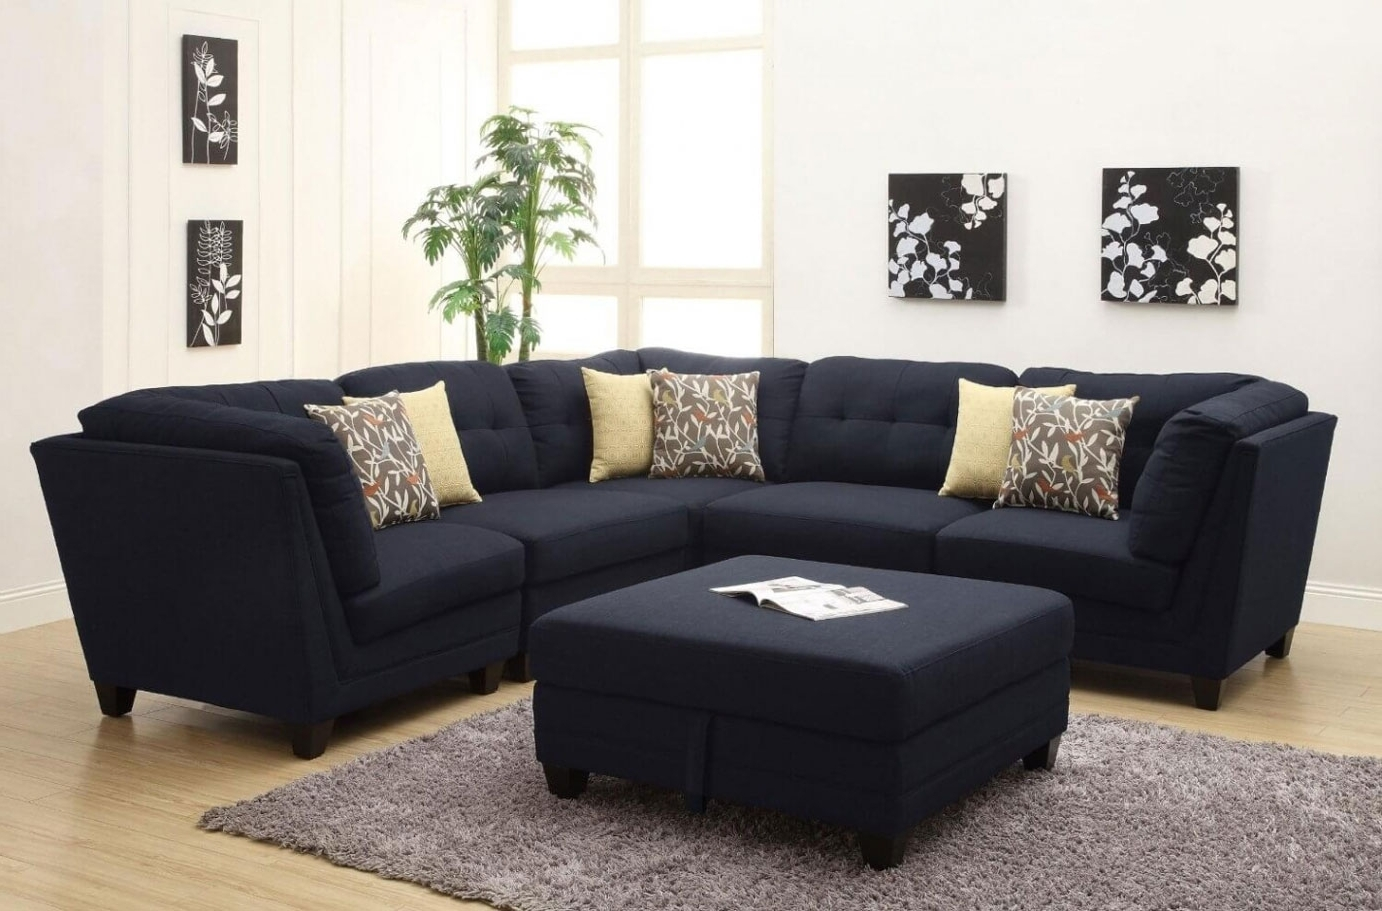 Sectional Sofa: Most Recommended Sectional Sofas Under $1000 Intended For Most Recent Grande Prairie Ab Sectional Sofas (View 7 of 20)